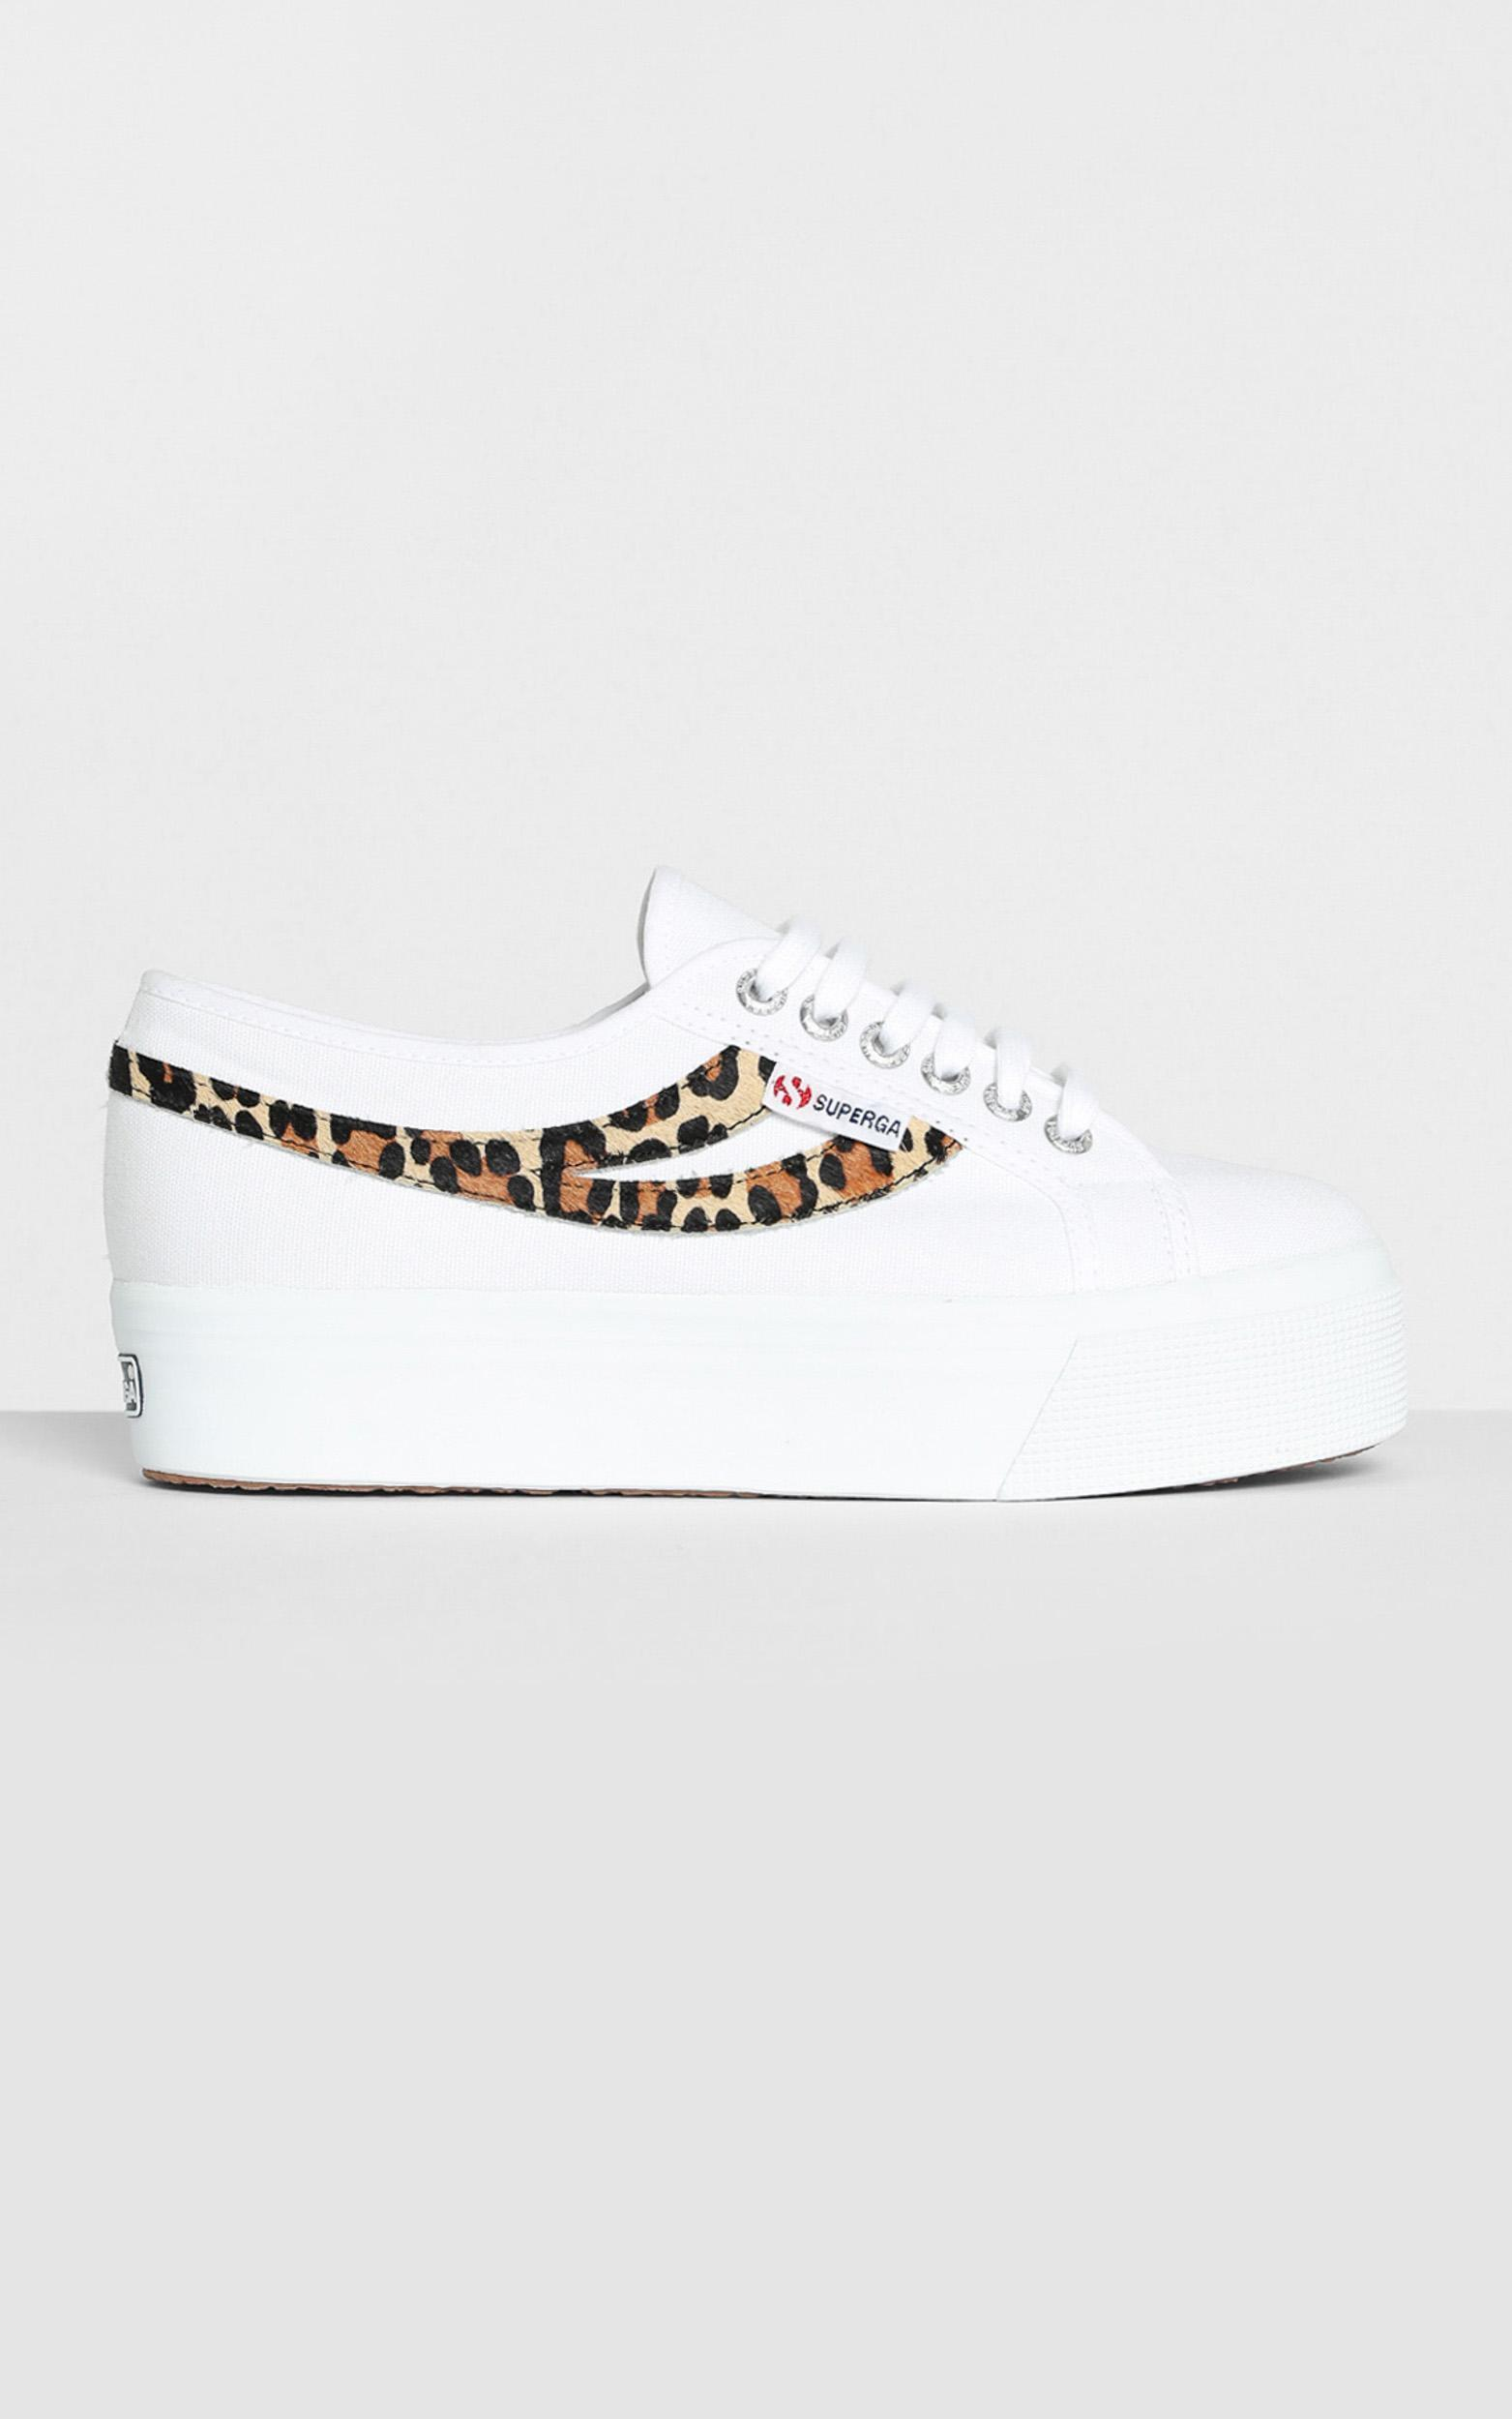 Superga - 2892 COTW Ponyhair Sneakers in White Cheetah - 5, White, hi-res image number null